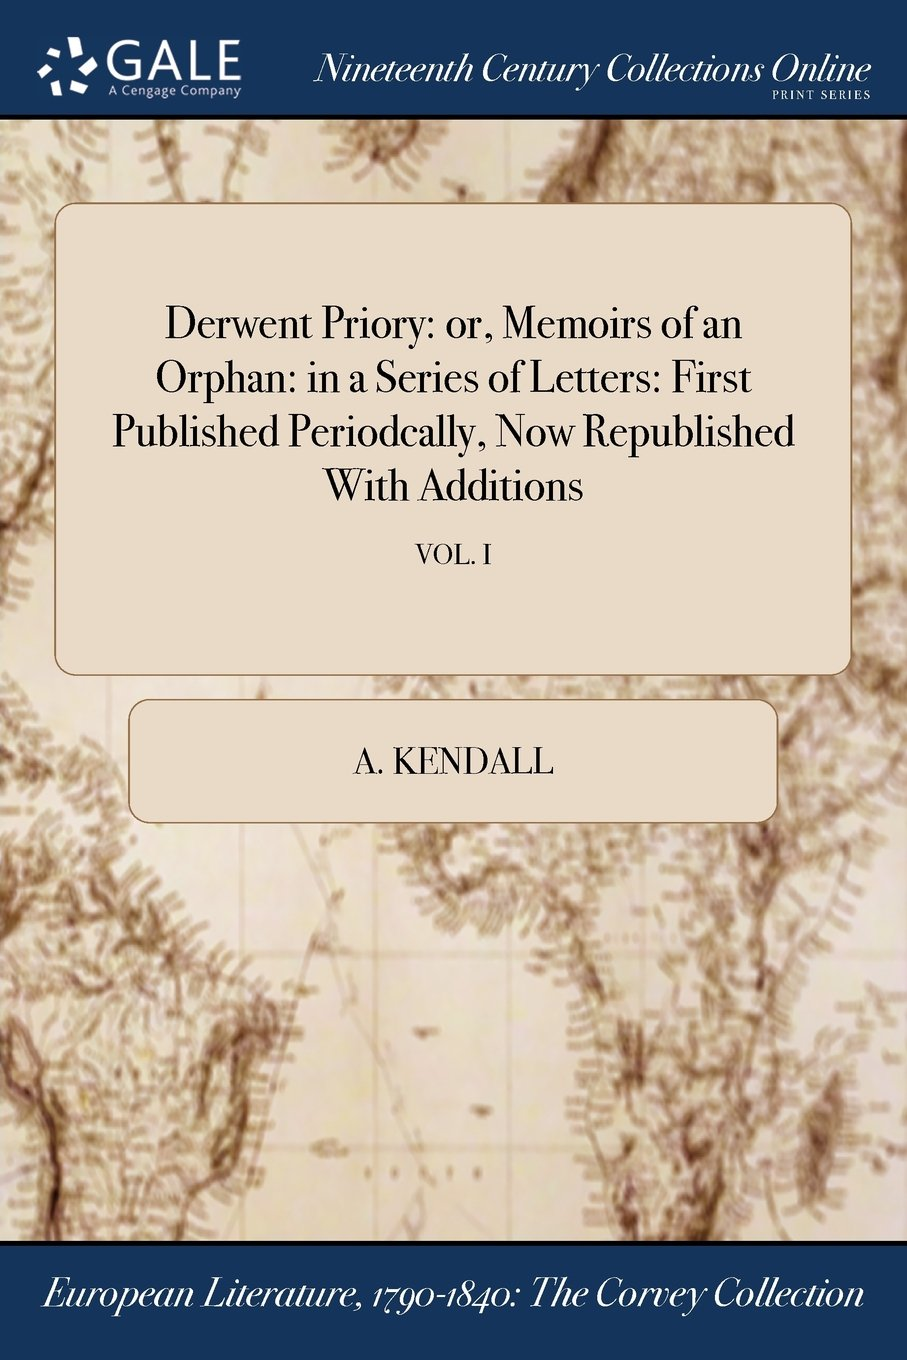 Read Online Derwent Priory: or, Memoirs of an Orphan: in a Series of Letters: First Published Periodcally, Now Republished With Additions; VOL. I ebook